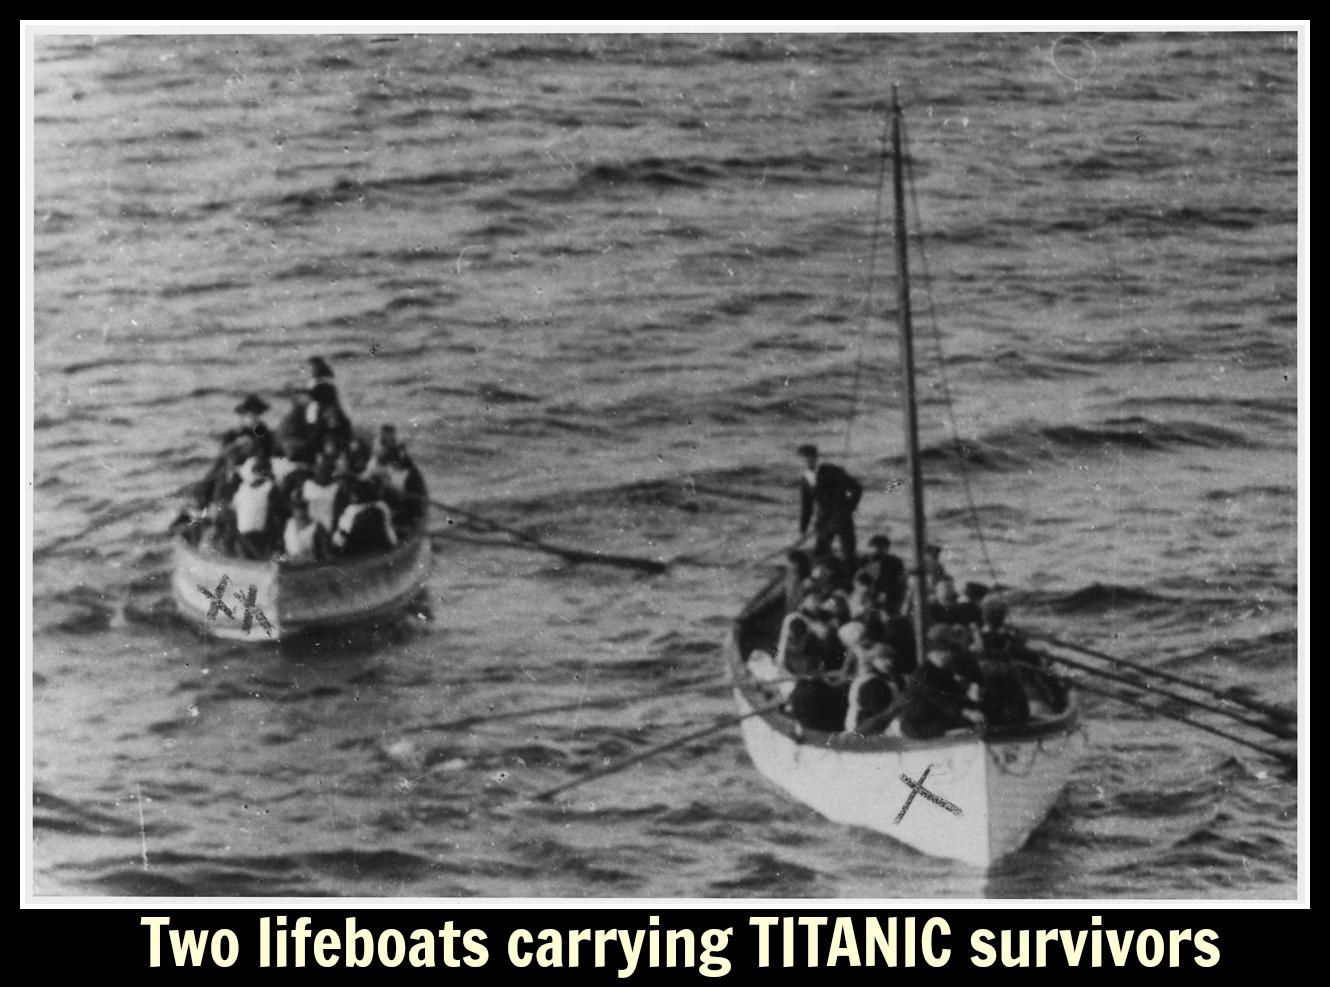 two lifeboats carying TITANIC survivors text